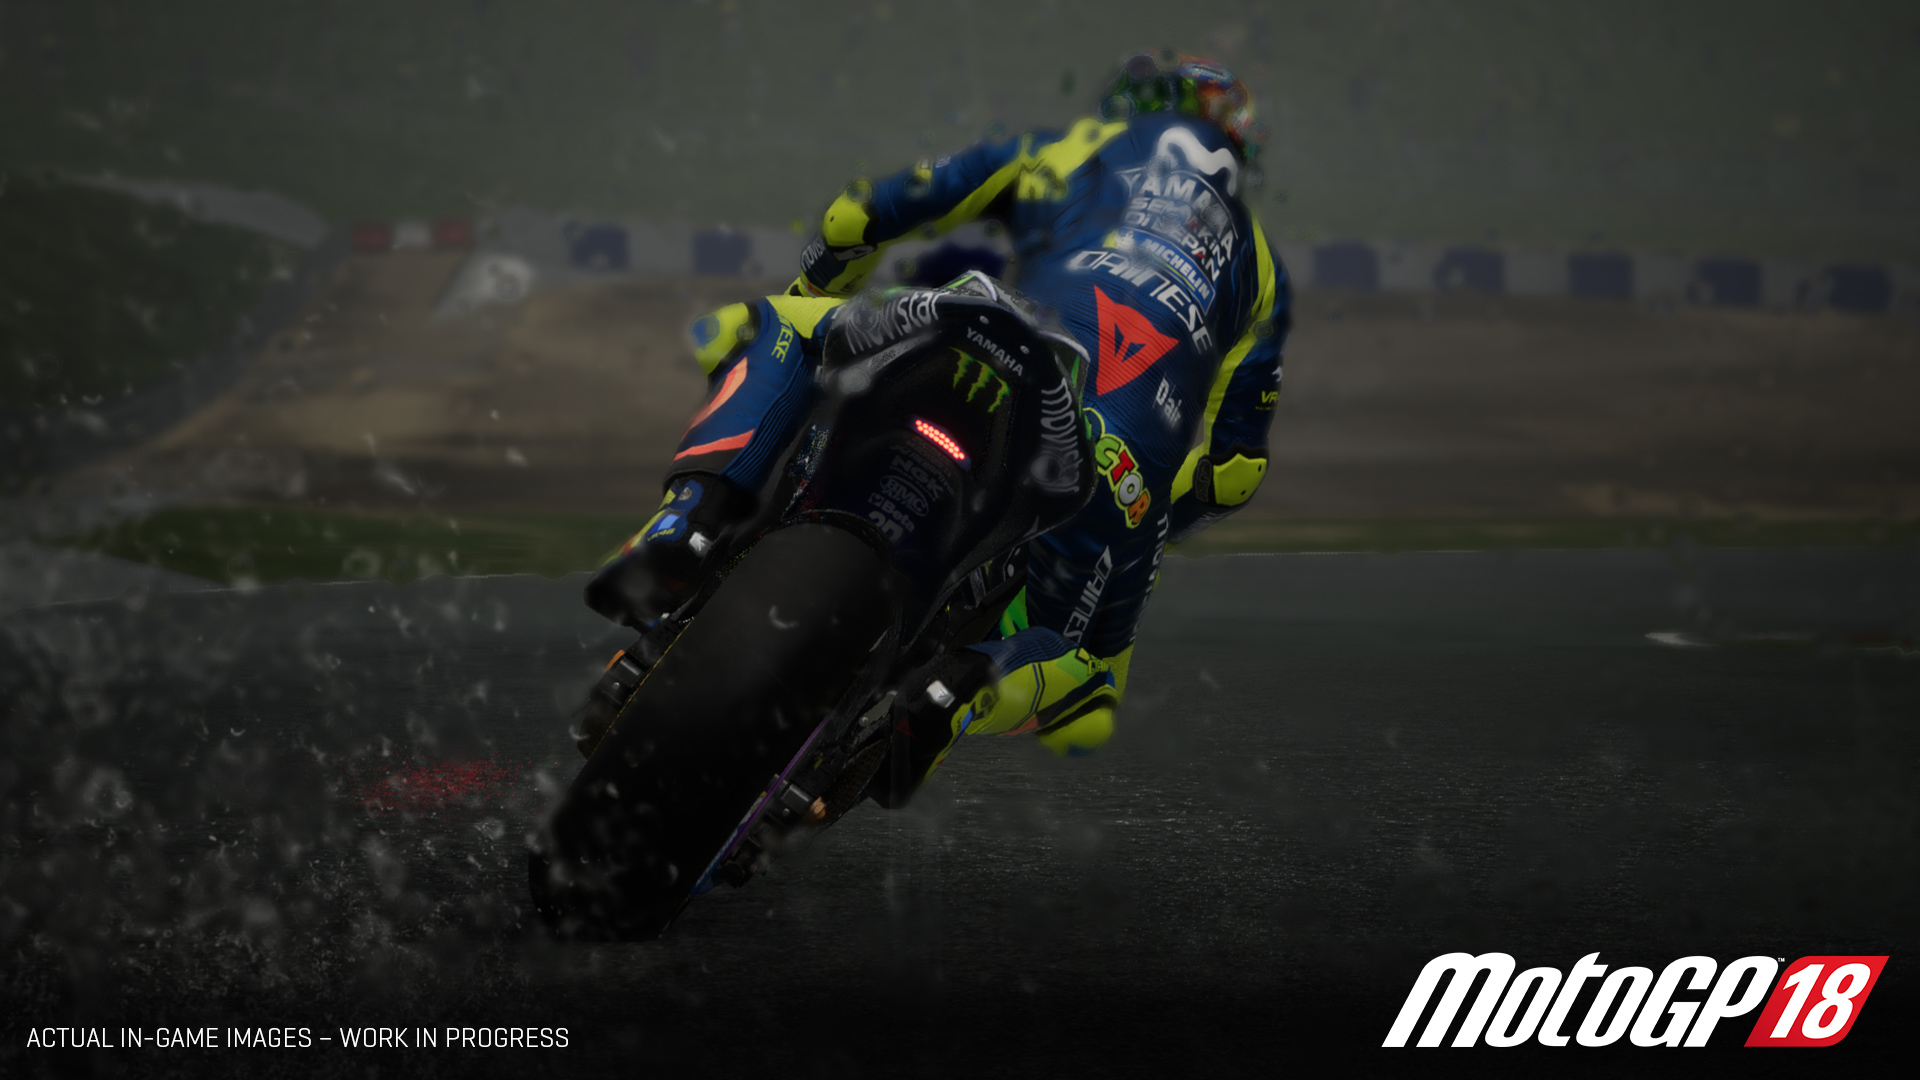 MotoGP 18 showcased for first time in new gameplay trailer